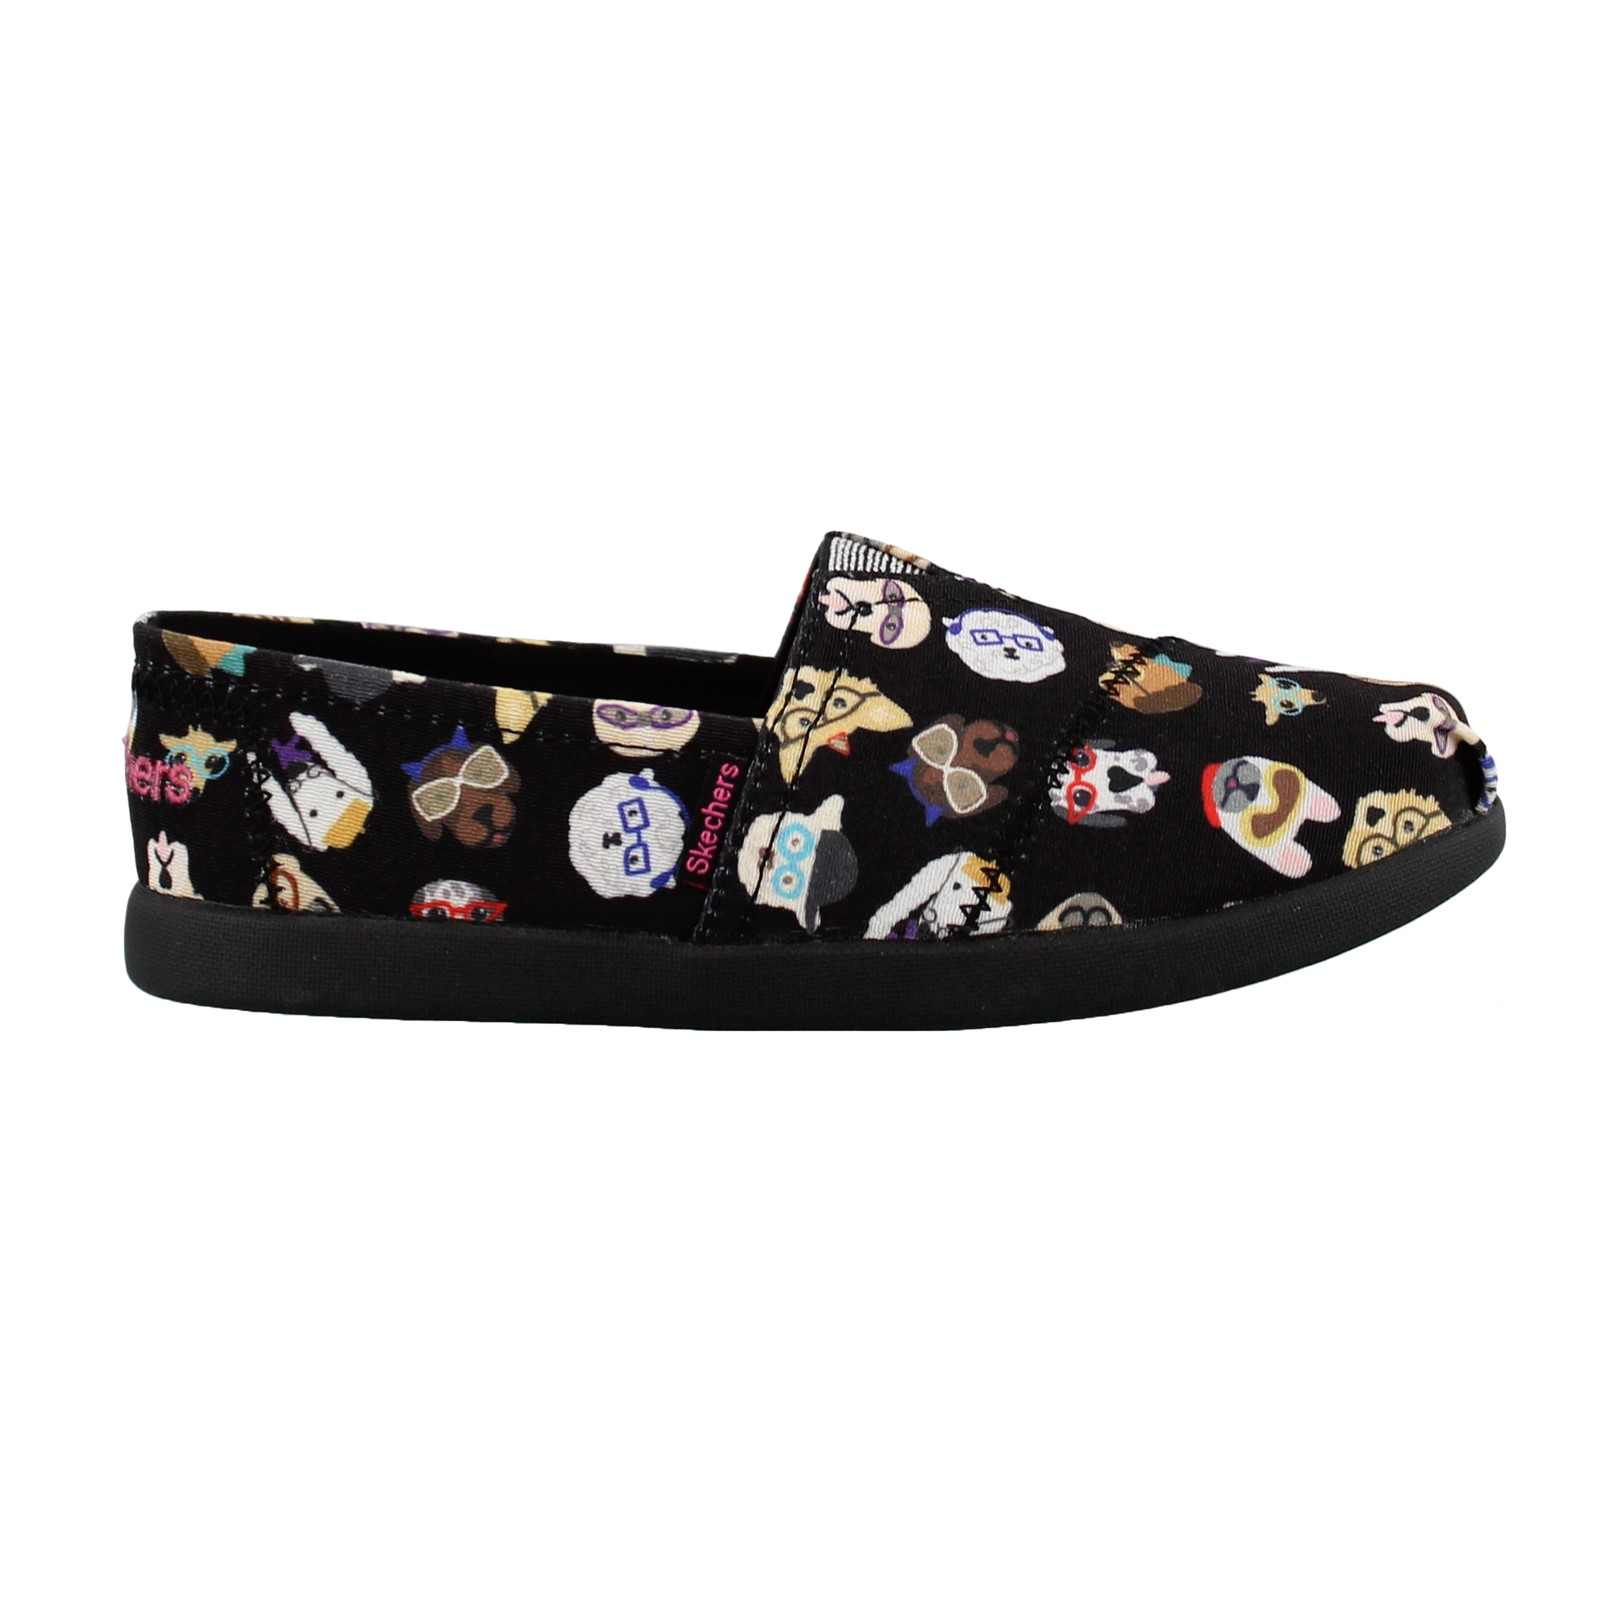 Girl's Skechers, Solestice Puppy Smarts Slip on Shoes